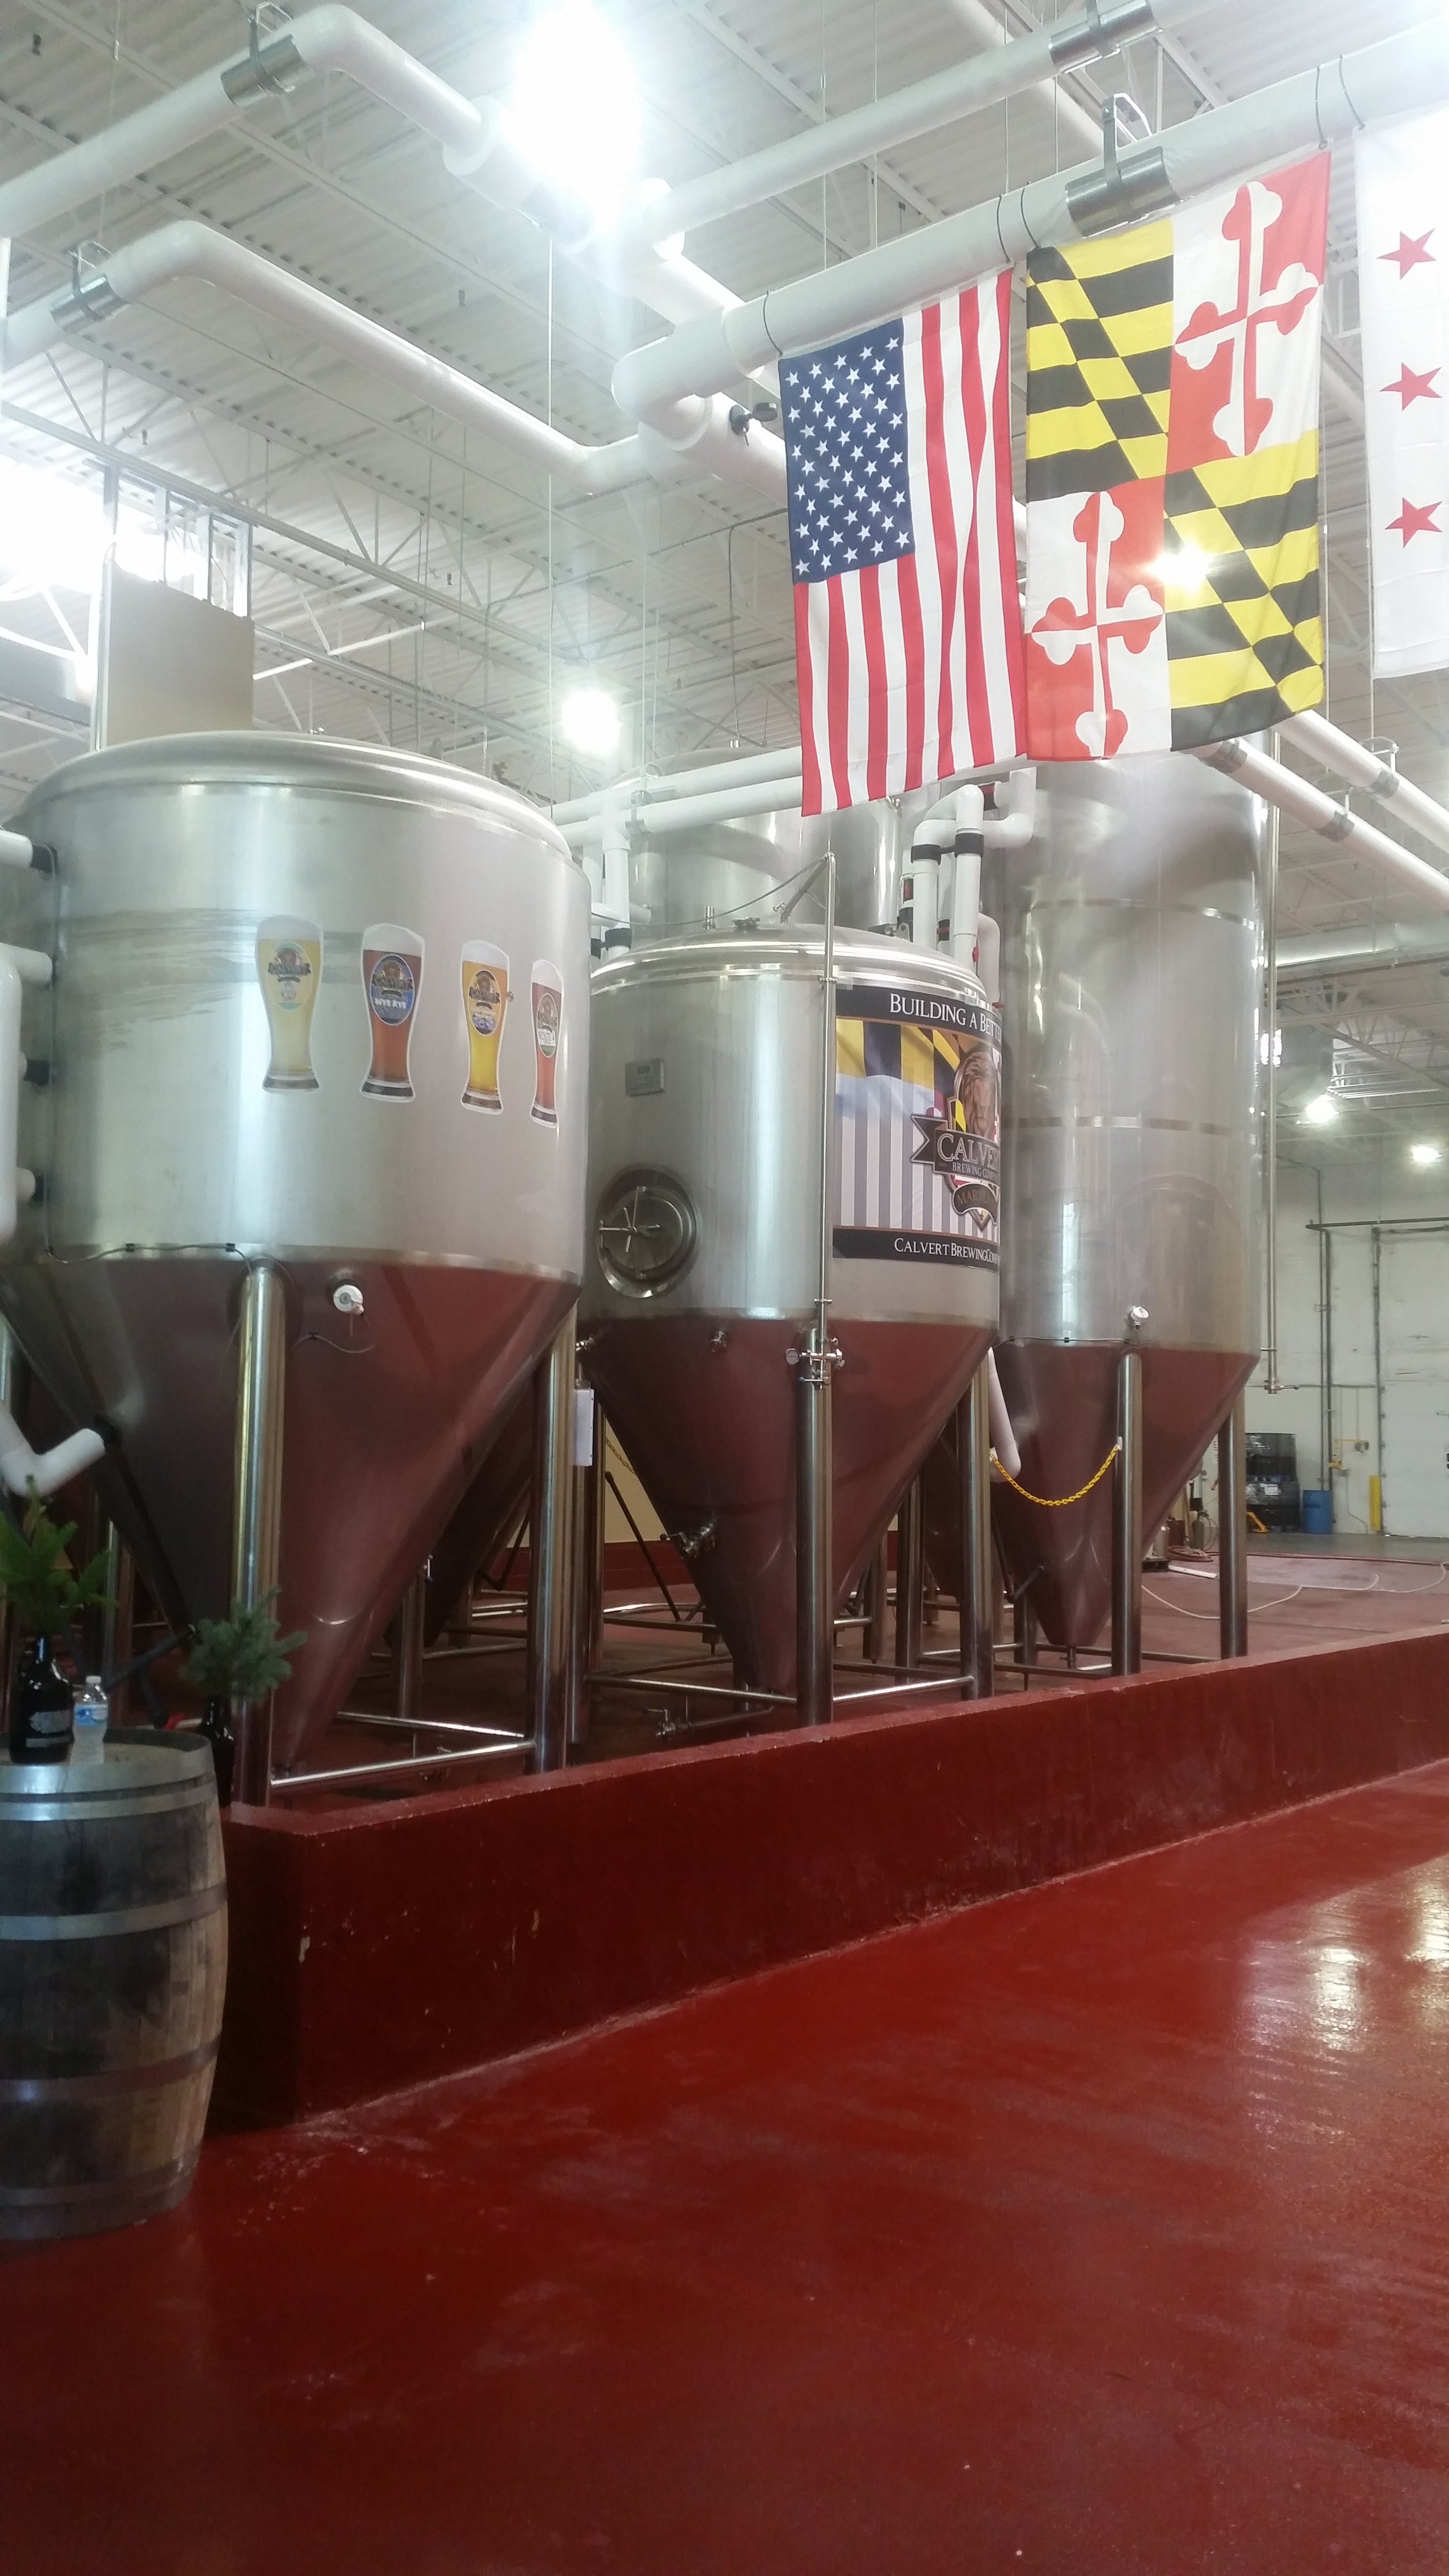 Partner with us through our contract brewing program.